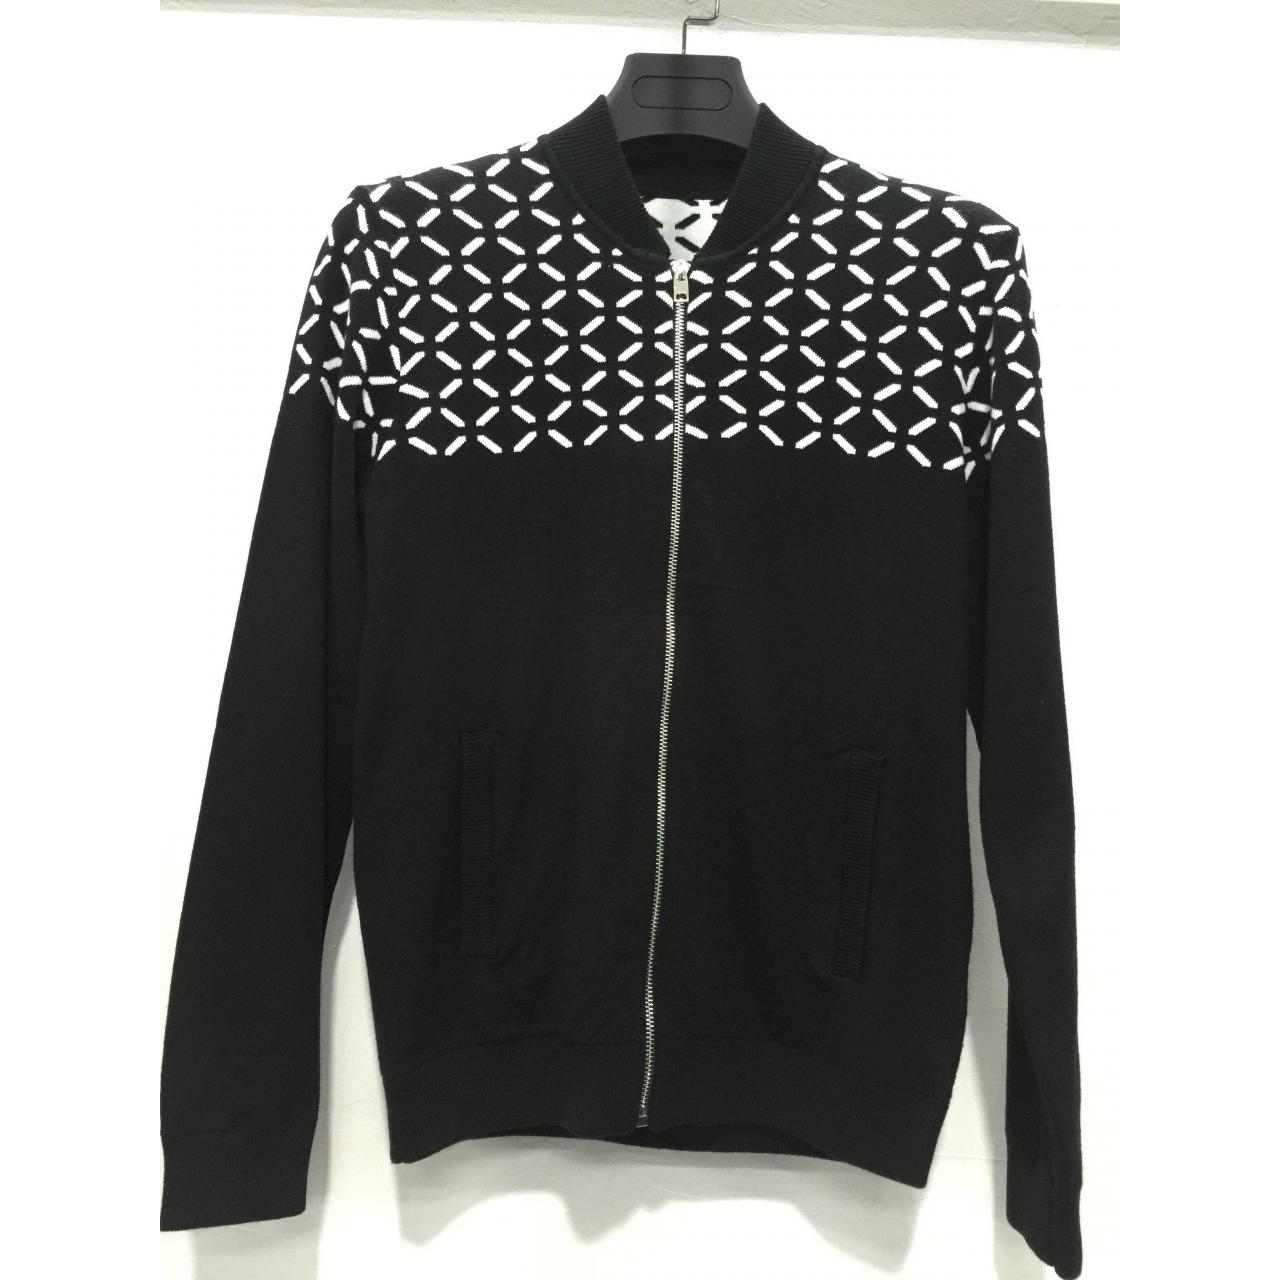 Wholesale High quality mens jacquard pattern black winter cardigan sweater from china suppliers